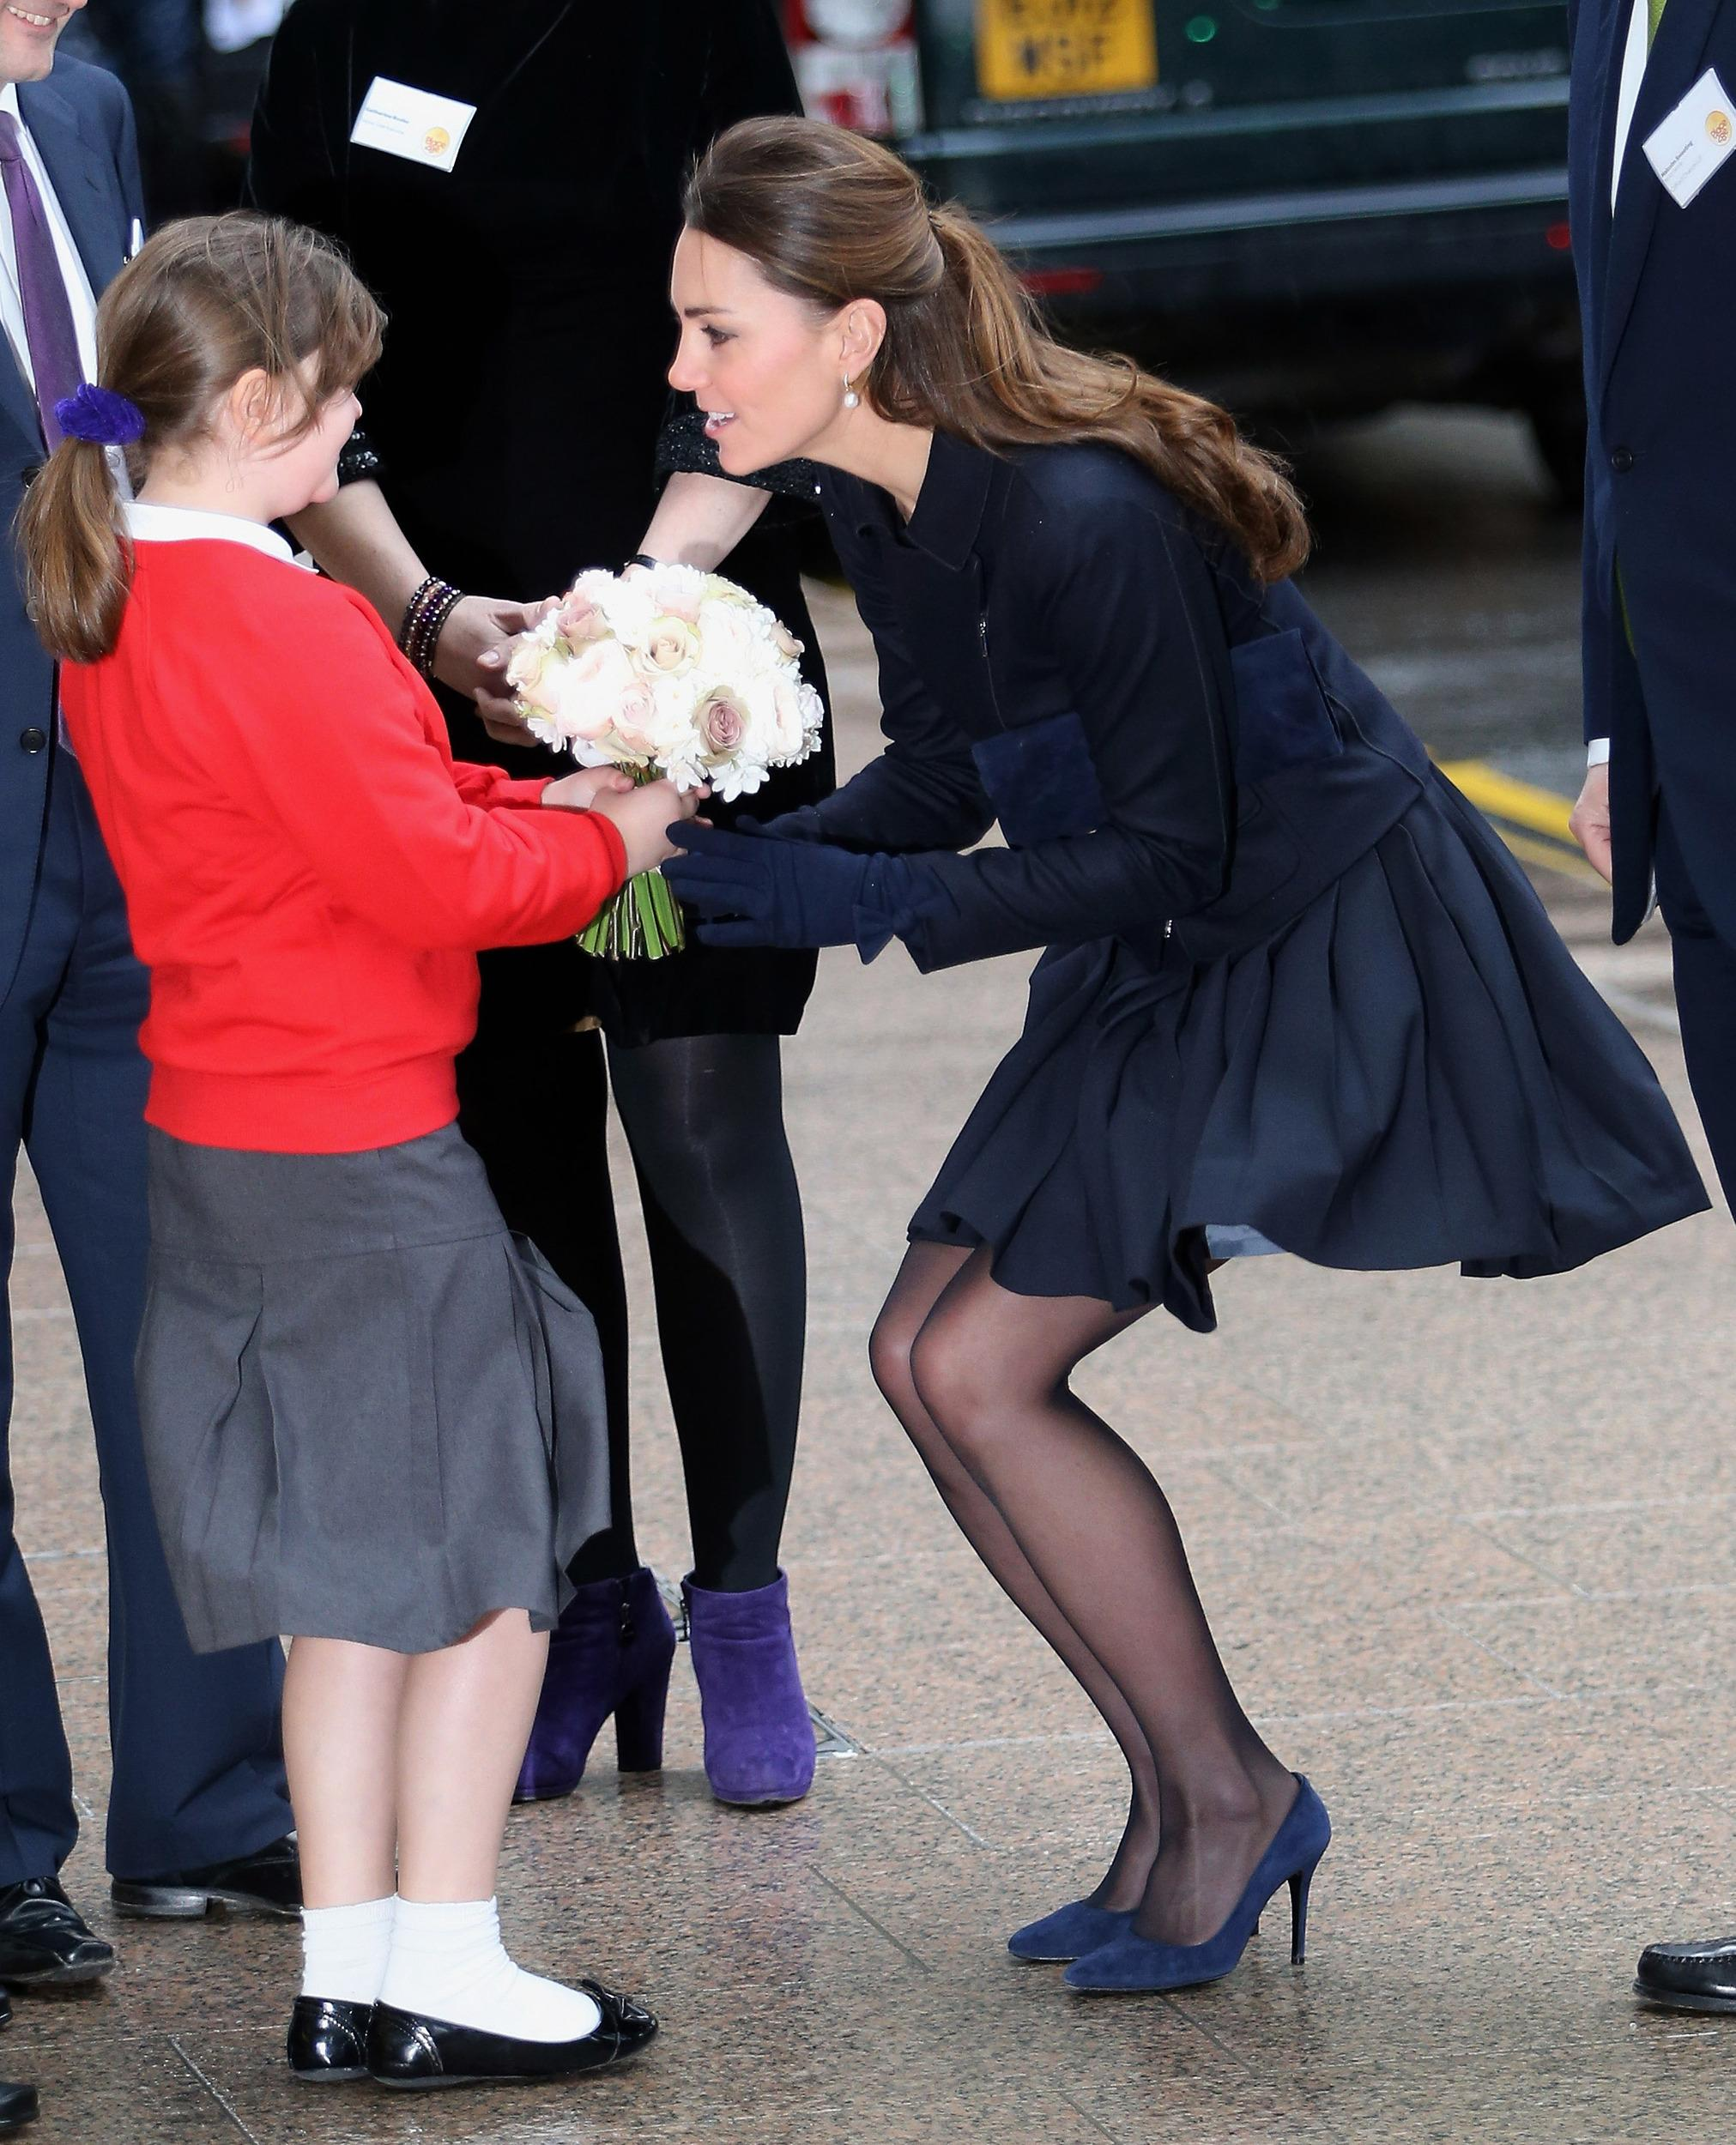 Kate looked lovely in London, wearing an Orla Kiely skirt and MaxMara coat as she received flowers from a young girl.